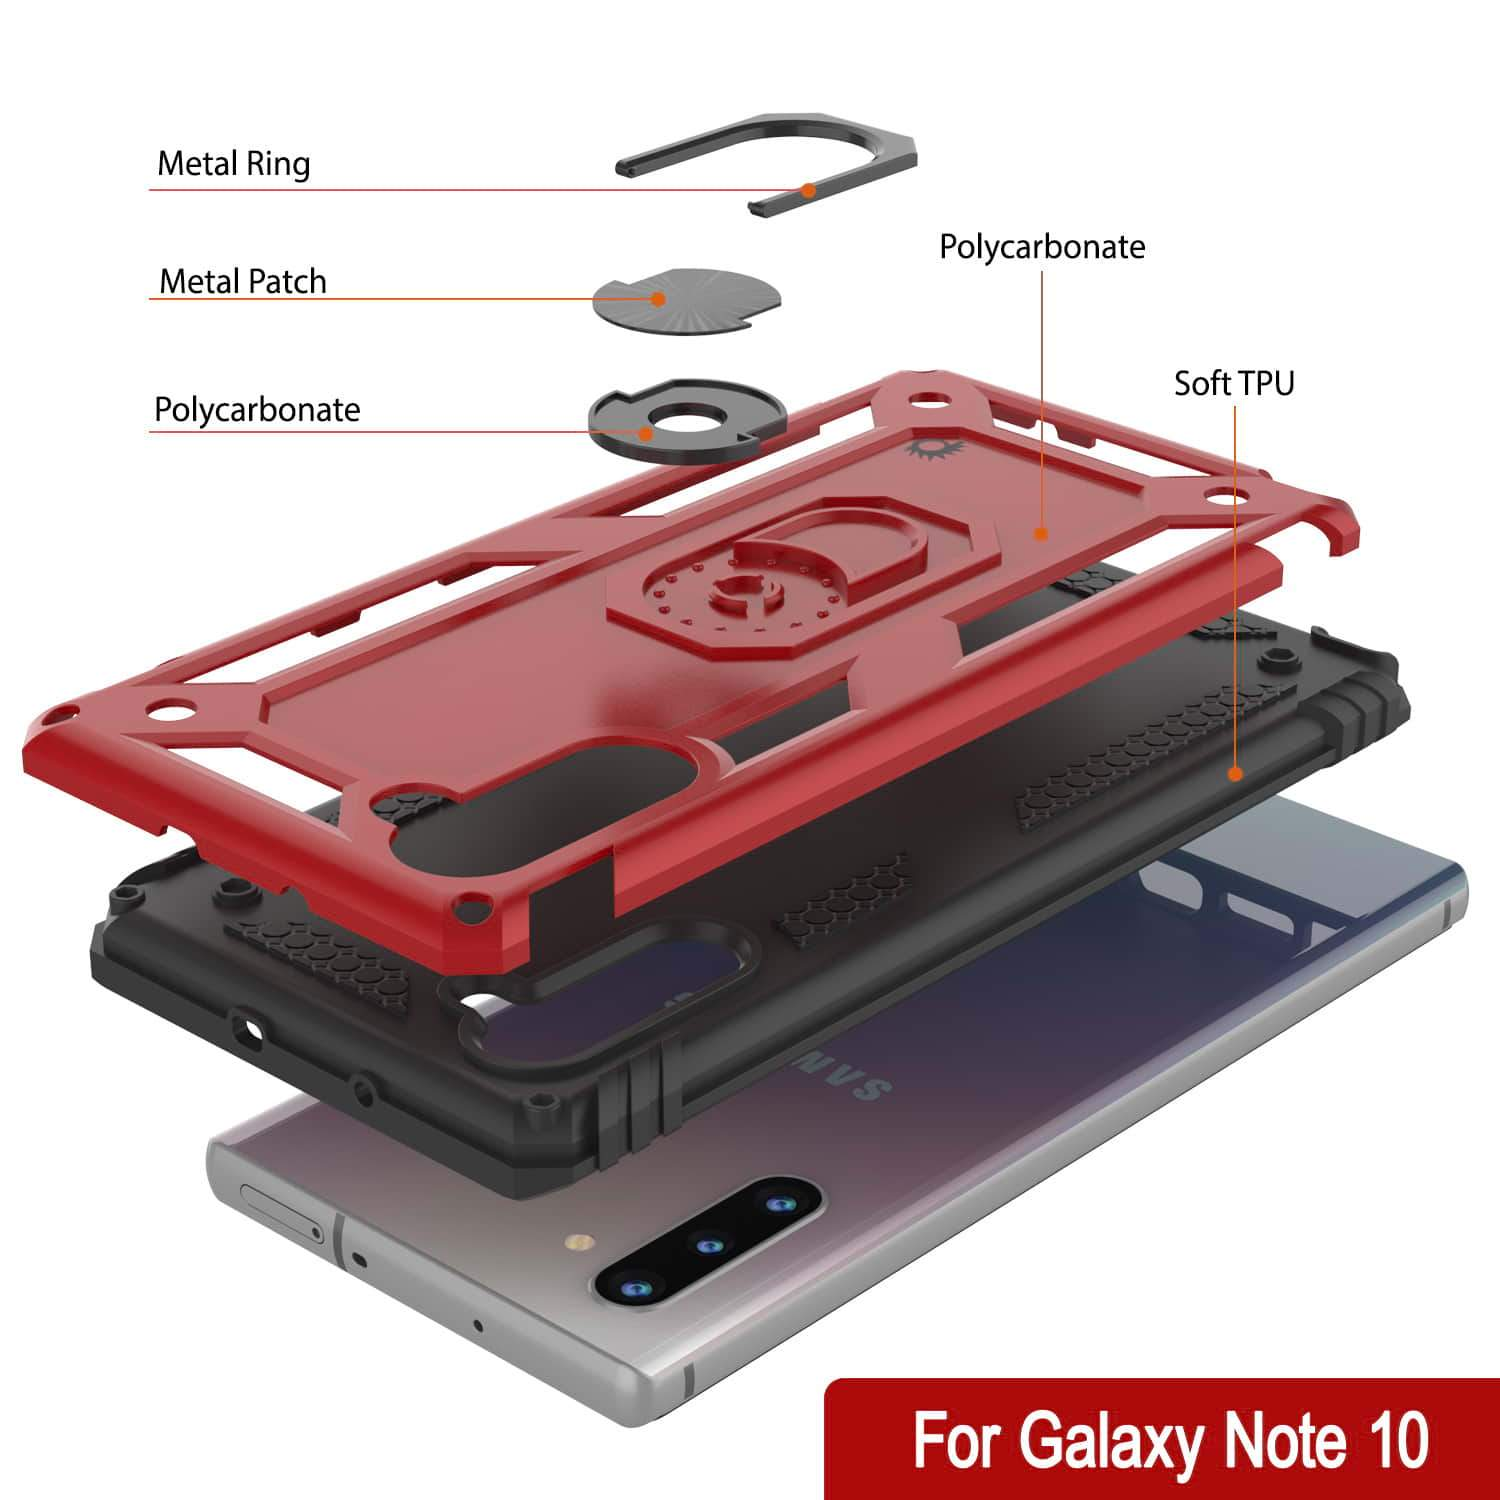 Galaxy Note 10 Punkcase Armor Military Case Red